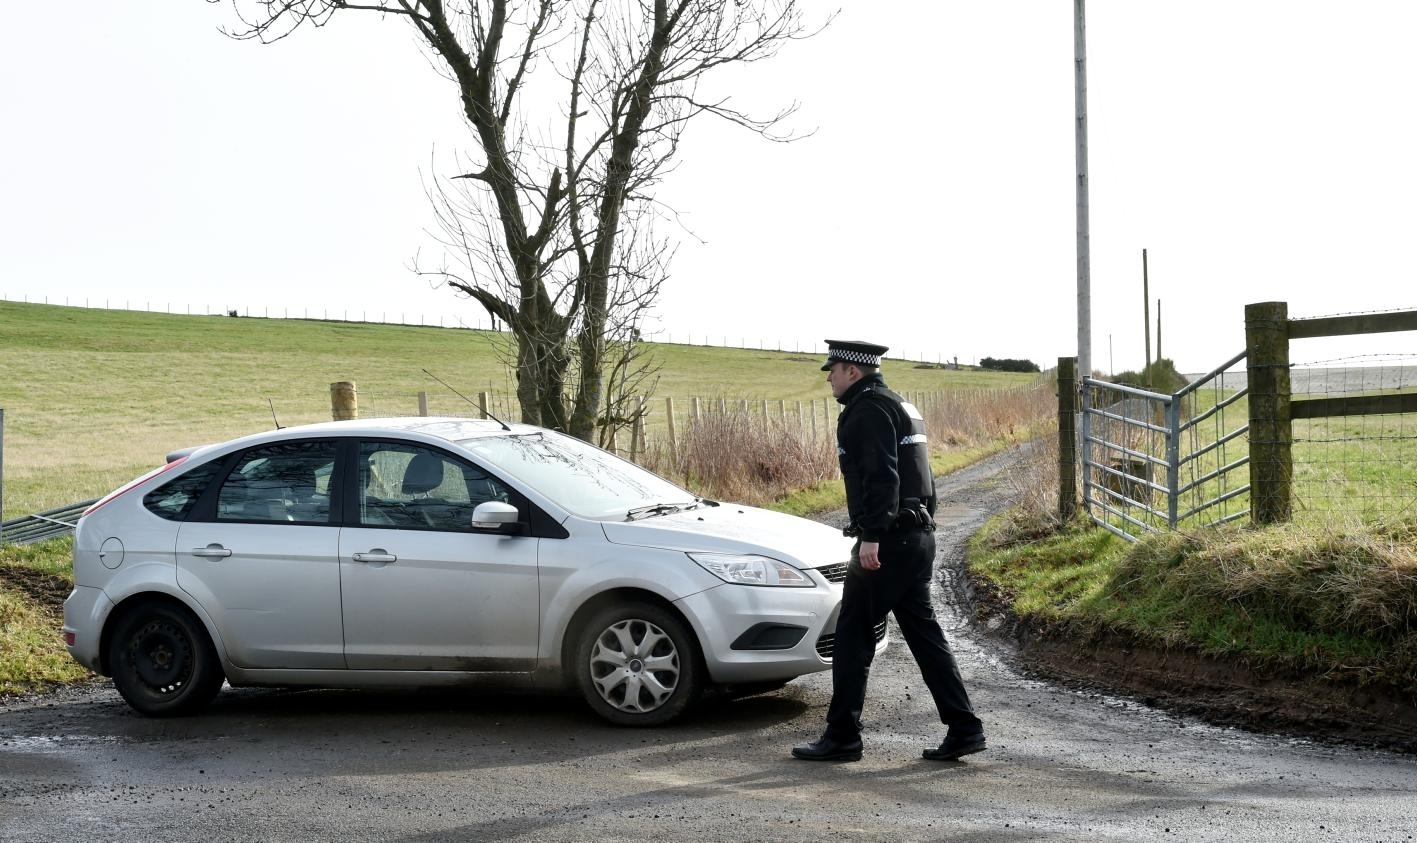 Police at the centre of Rothienorman